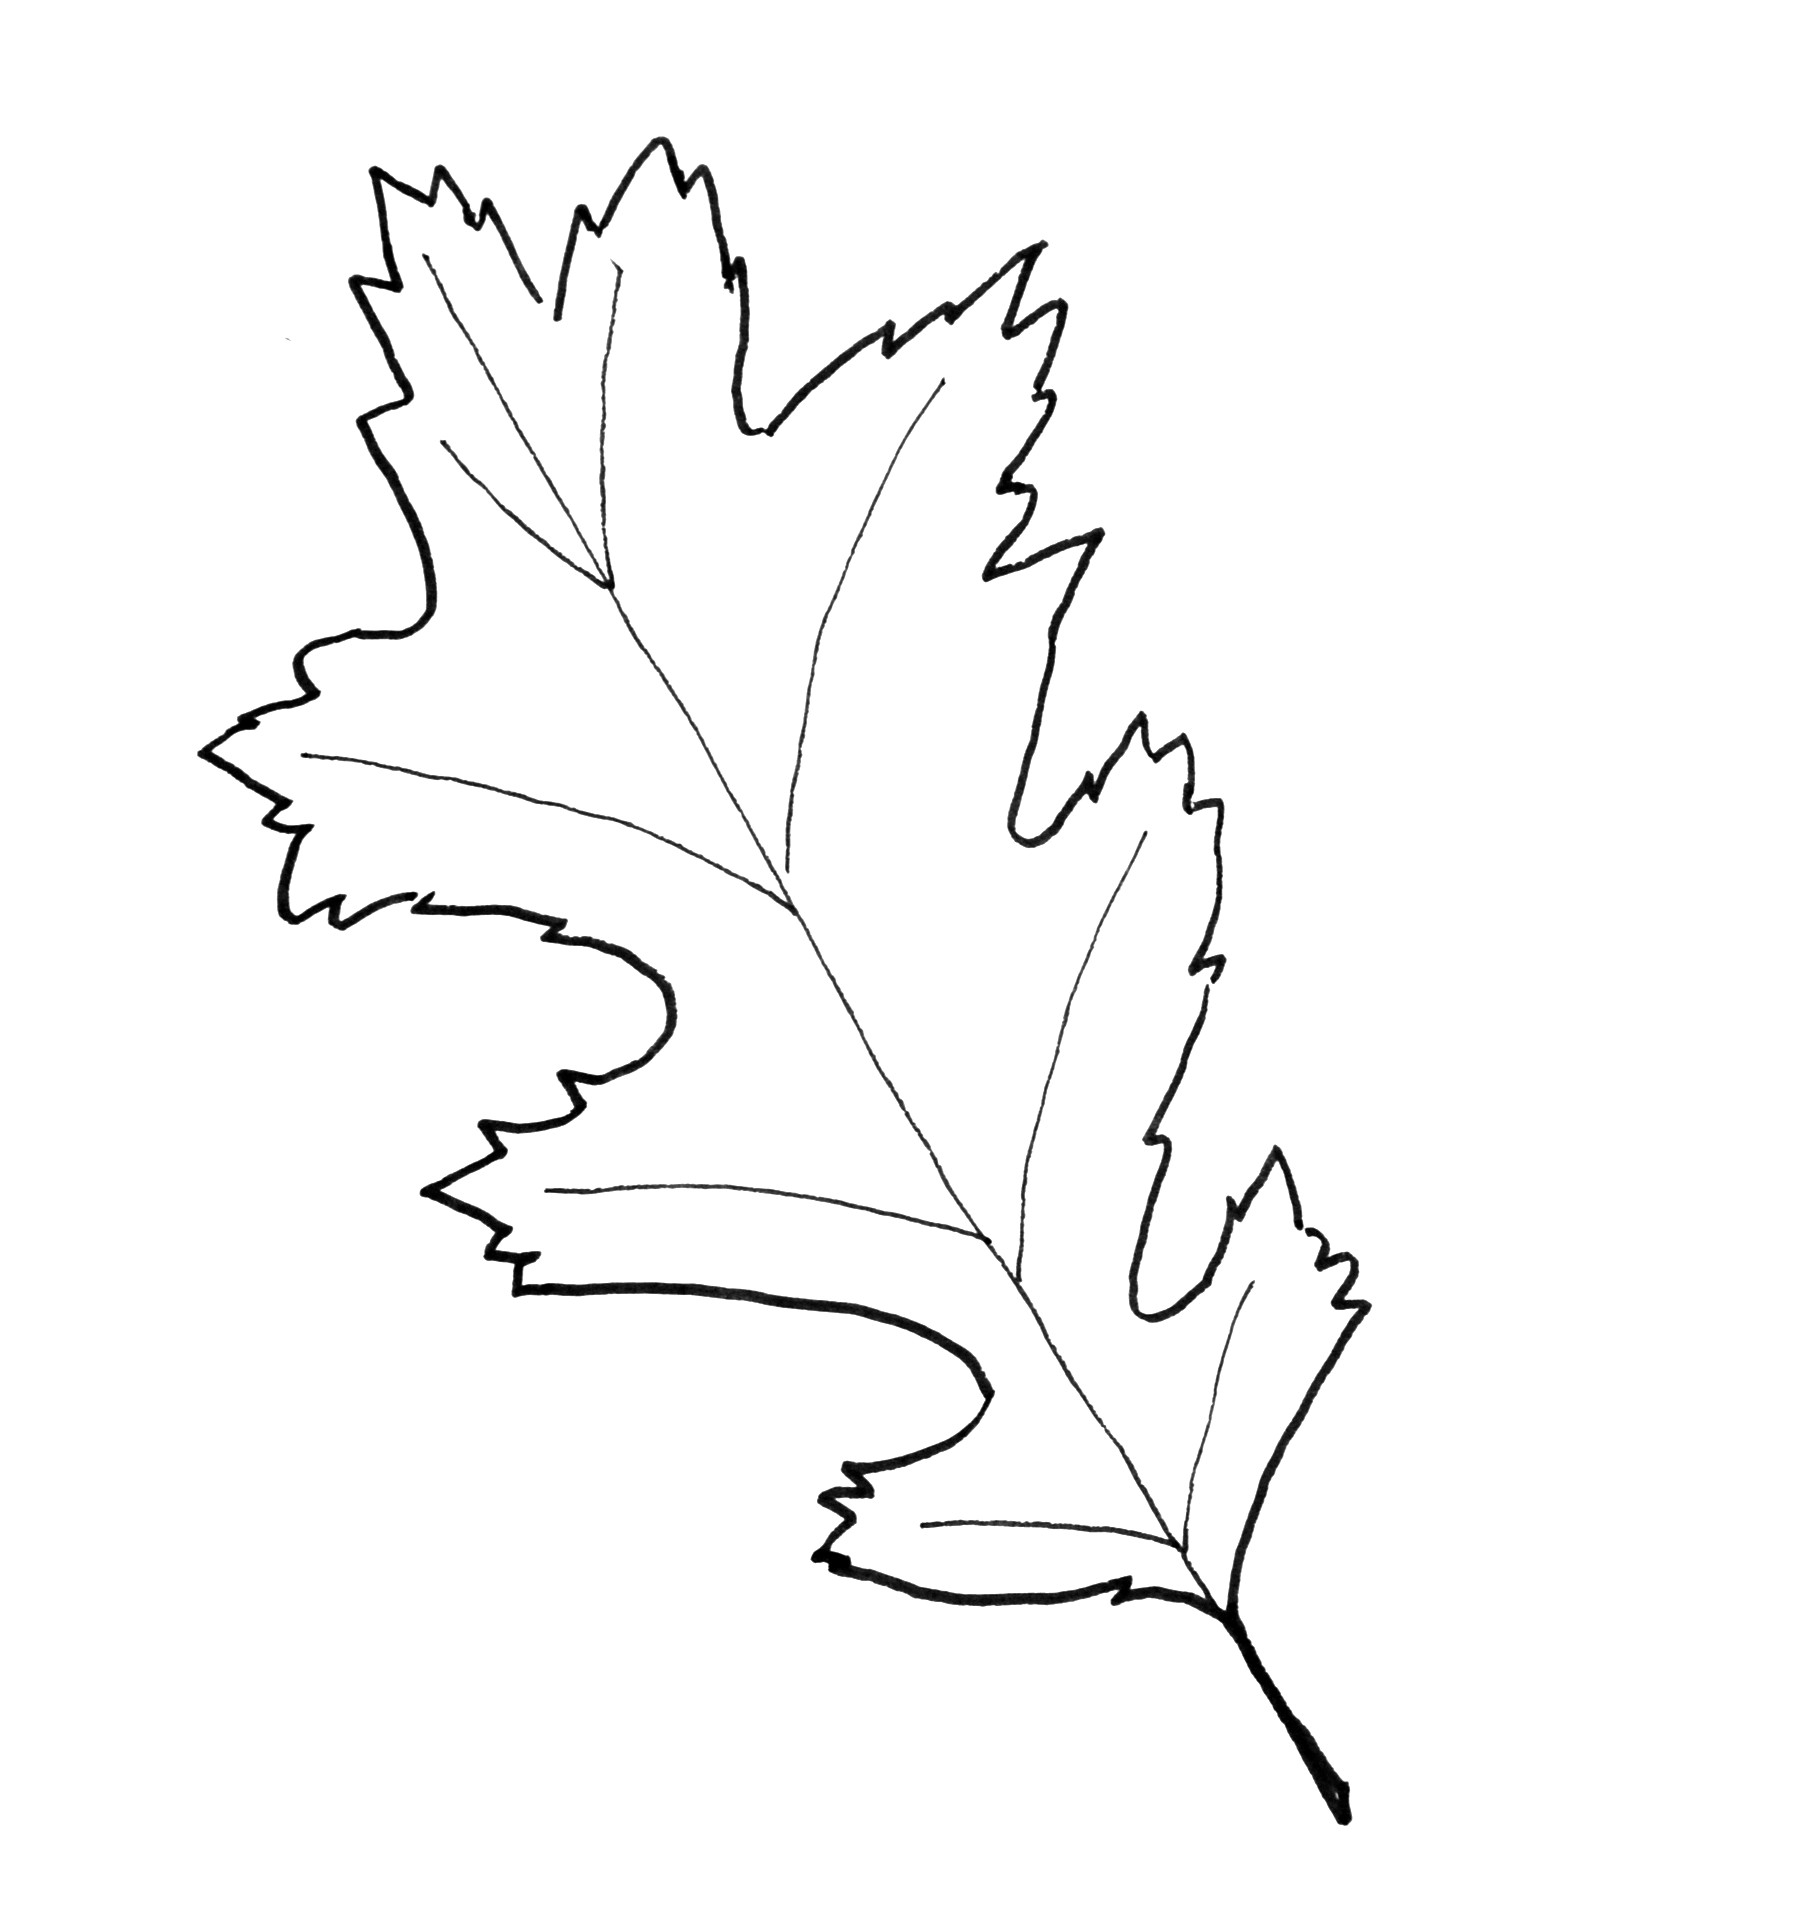 Fresh Printable Leaf Pattern Interesting Templates Coloring Pages - Free Printable Oak Leaf Patterns